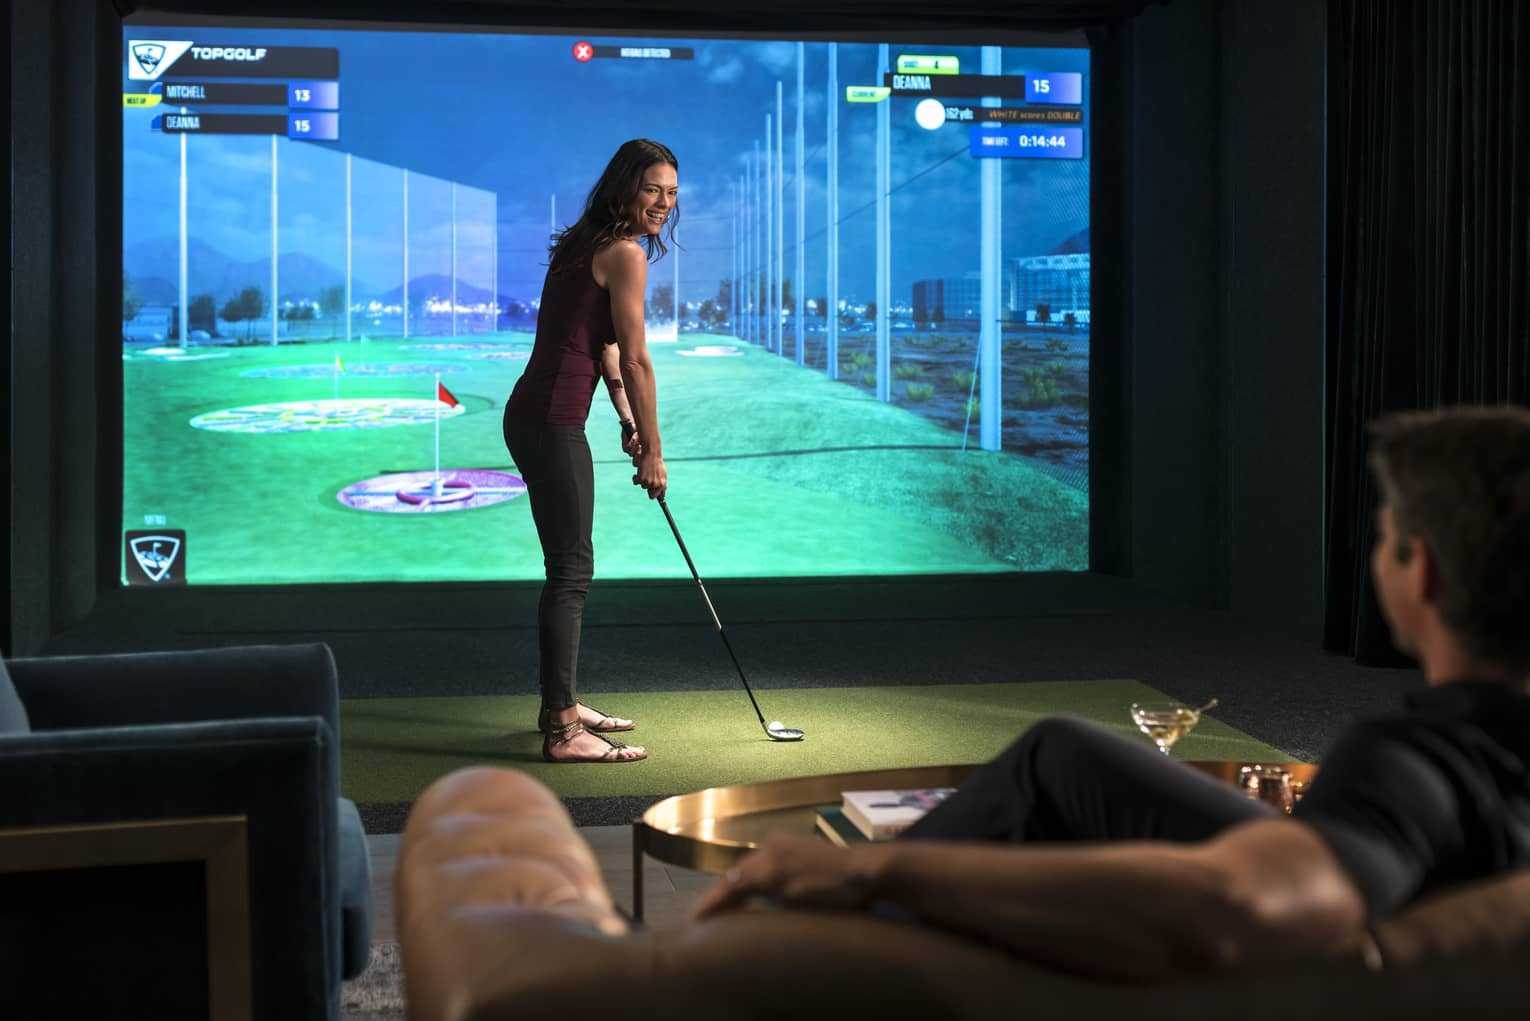 A woman prepares to swing a golf club in front of a virtual golf simulator screen